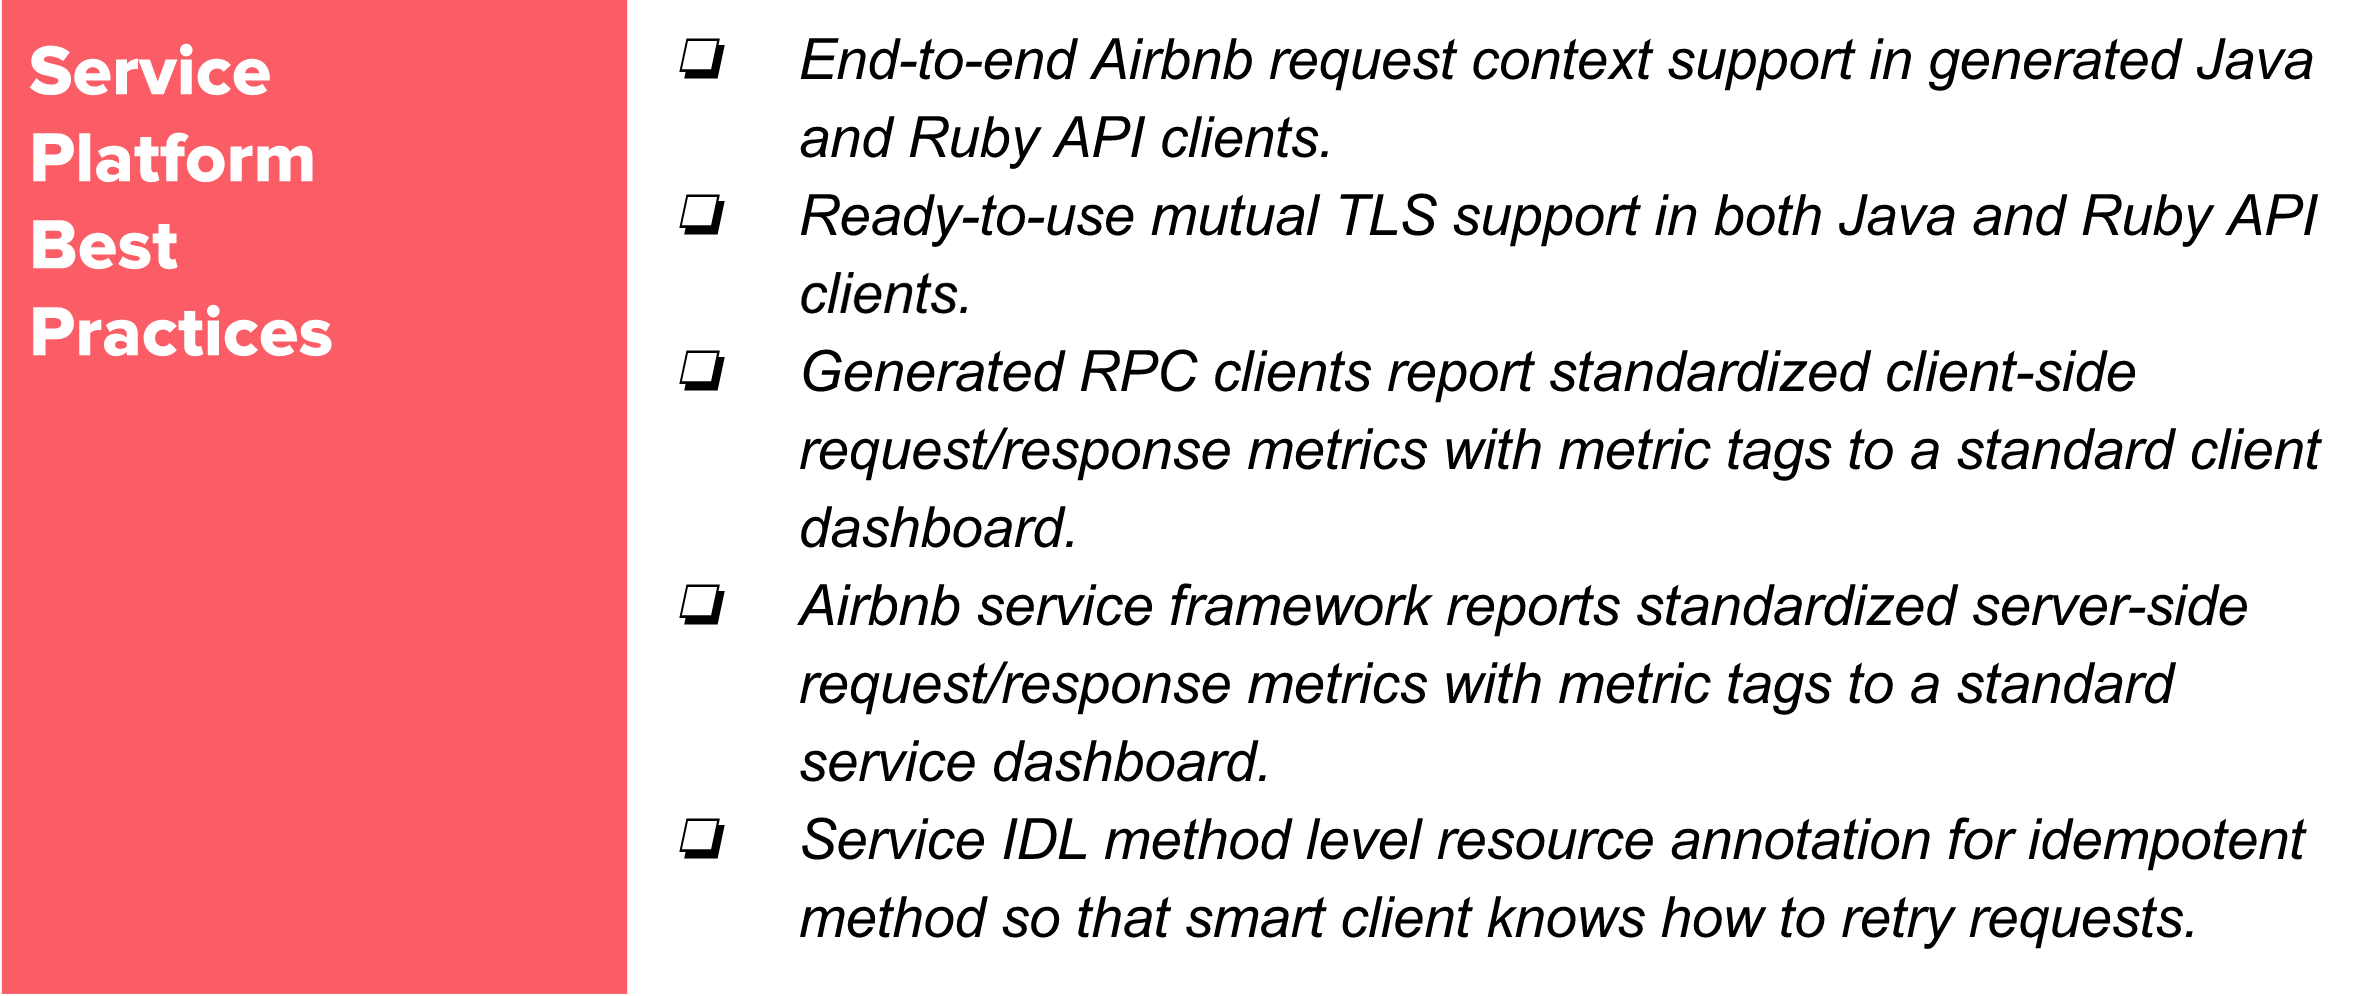 Building Services at Airbnb, Part 1 - Airbnb Engineering